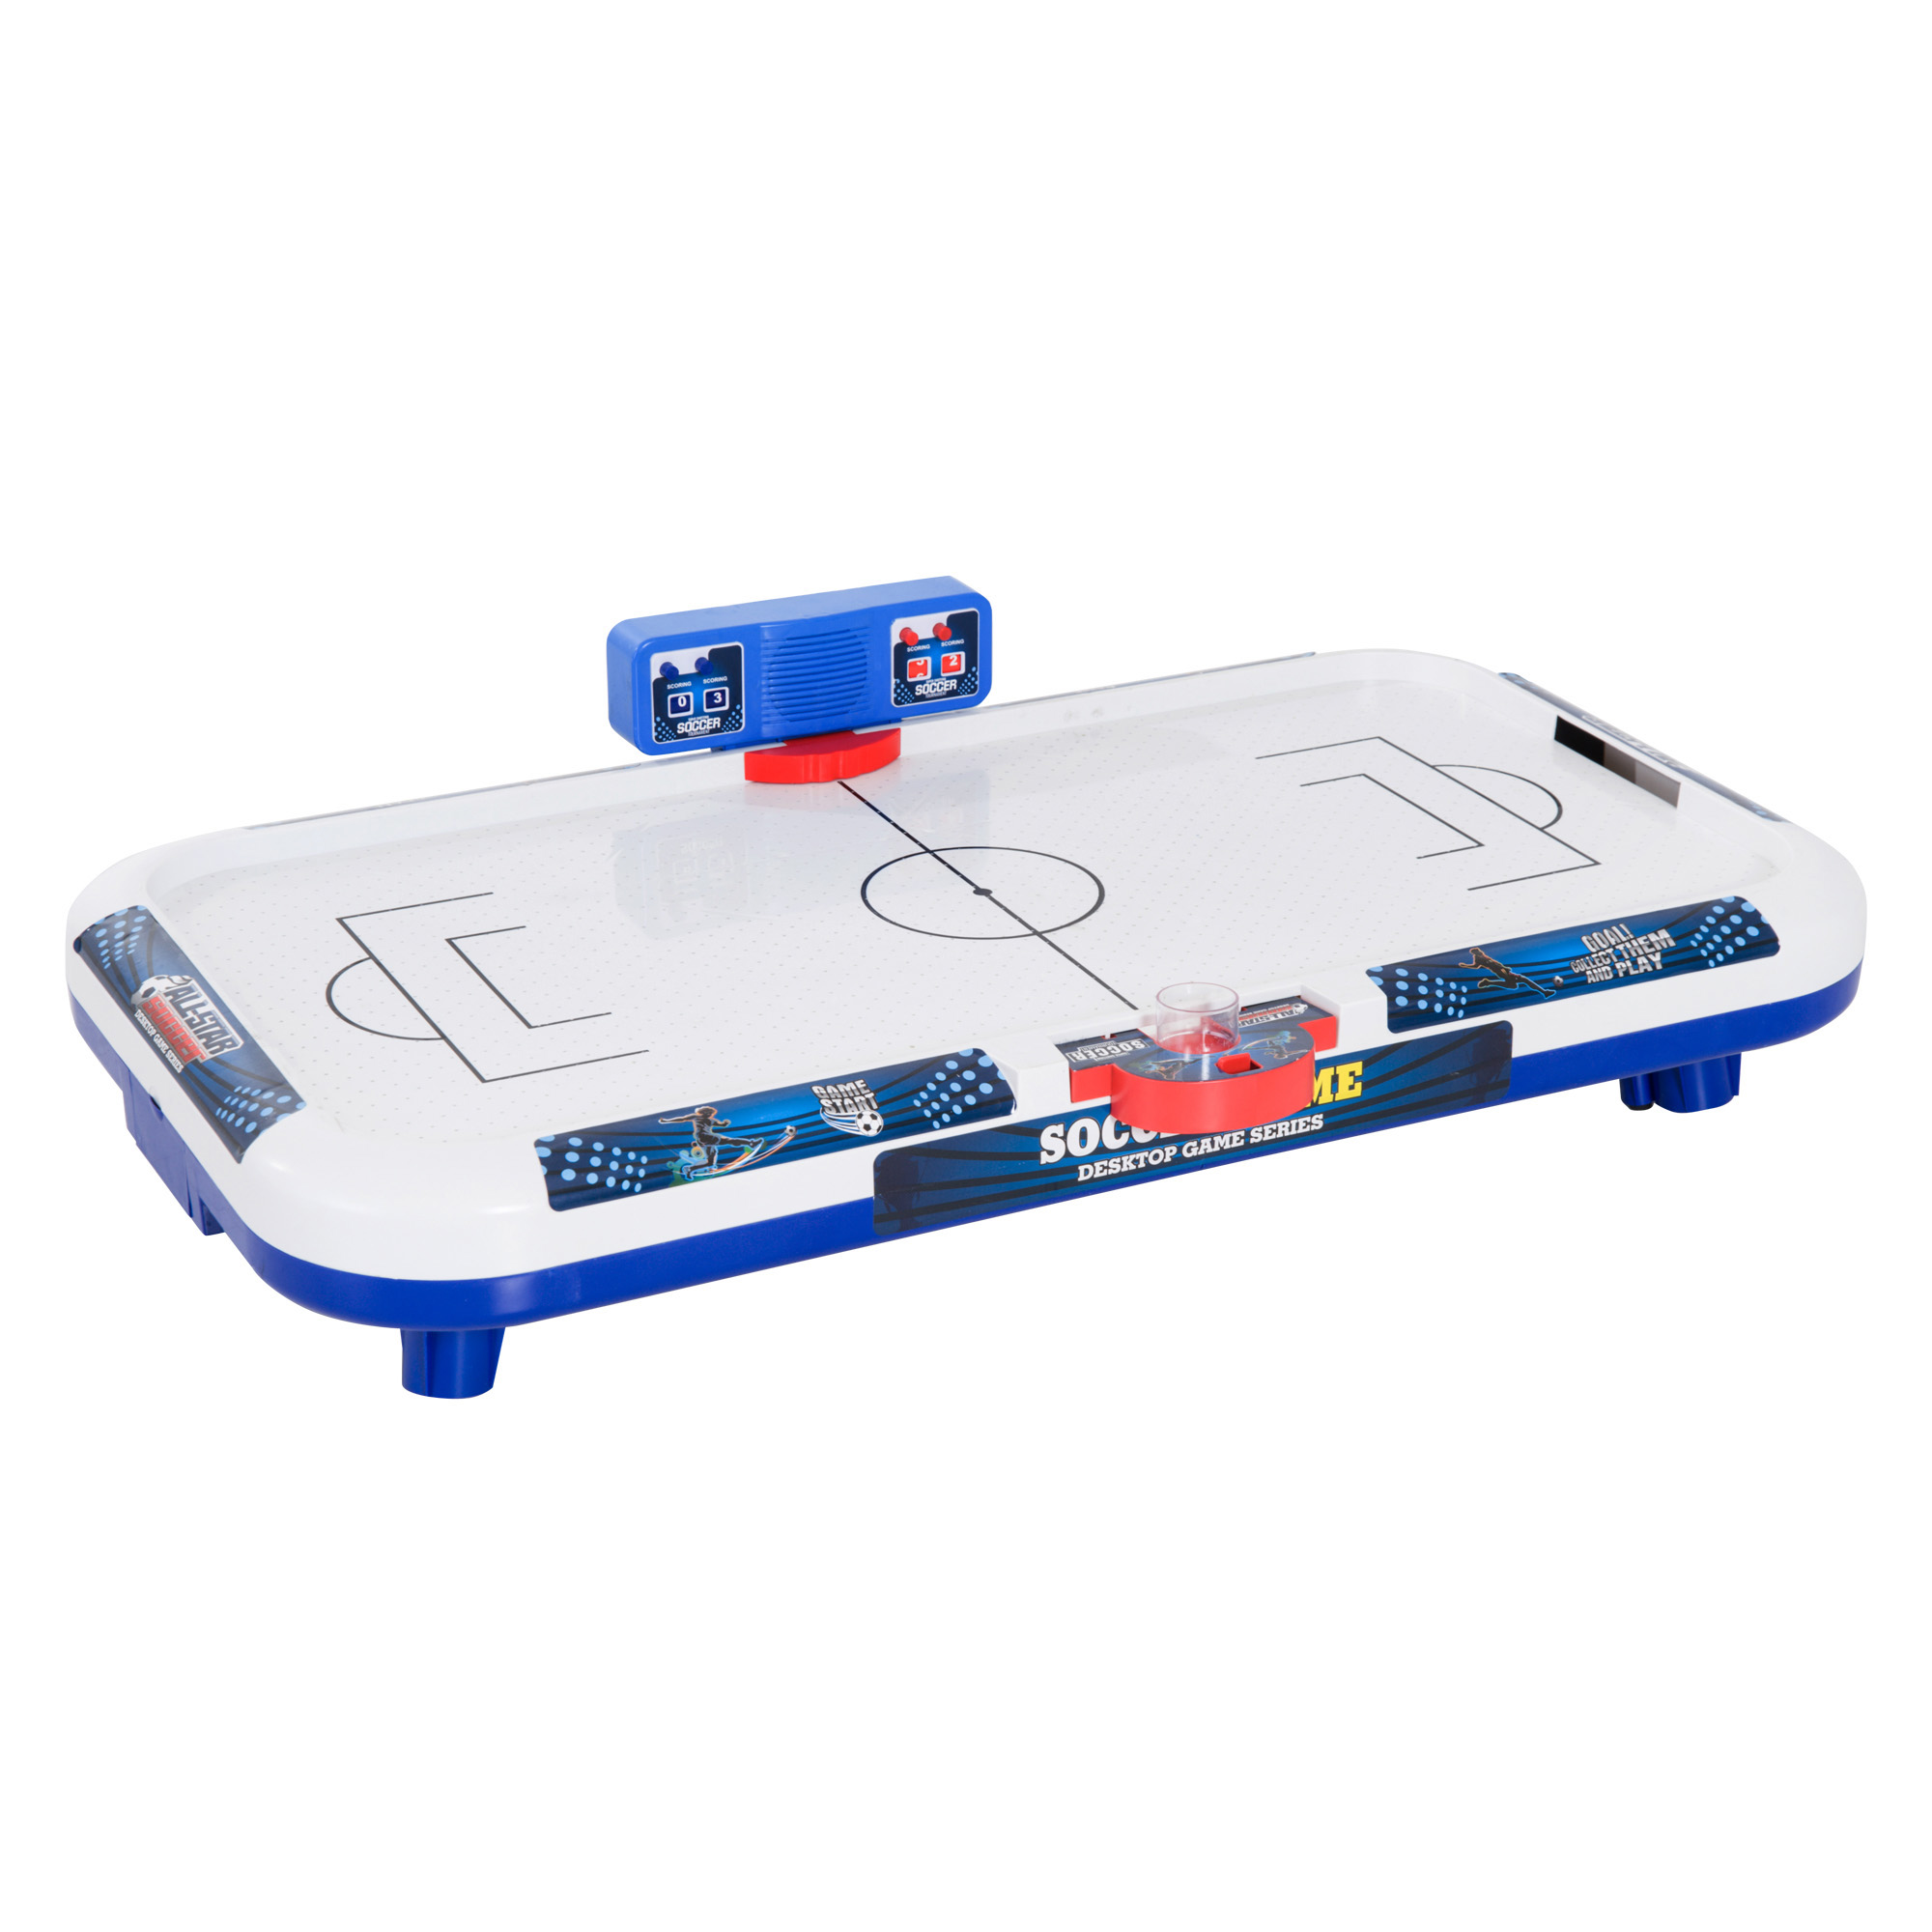 "Soozier 40"" Mini Soccer Themed Air Hockey Tabletop Game for Kids - White/Blue"